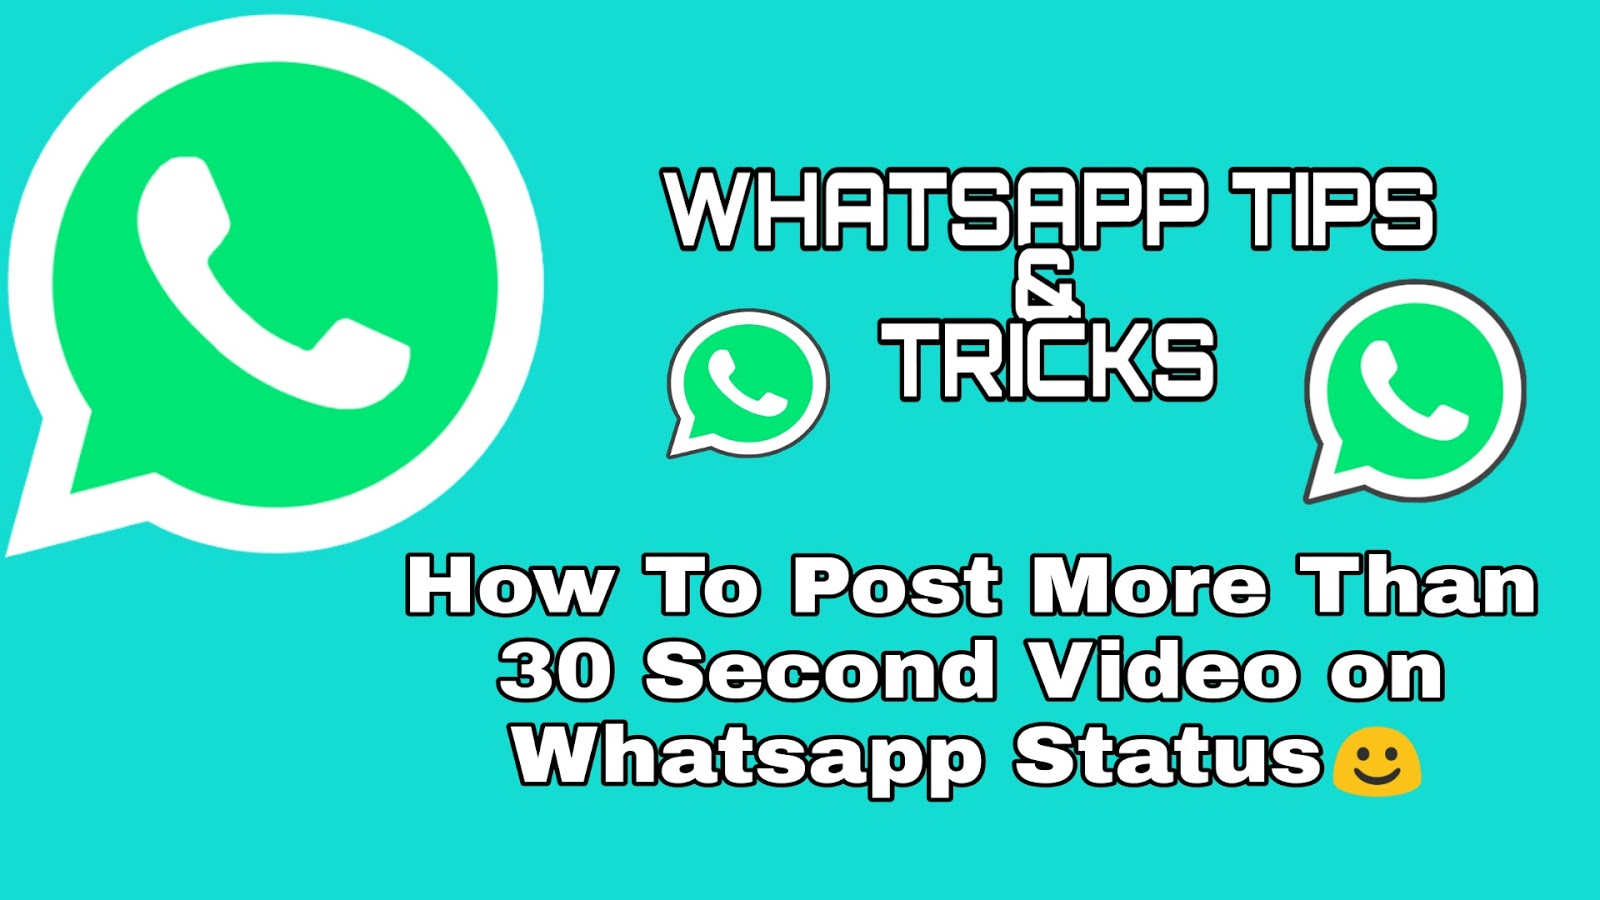 How To Post More Than 30 Second Video On Whatsapp Status